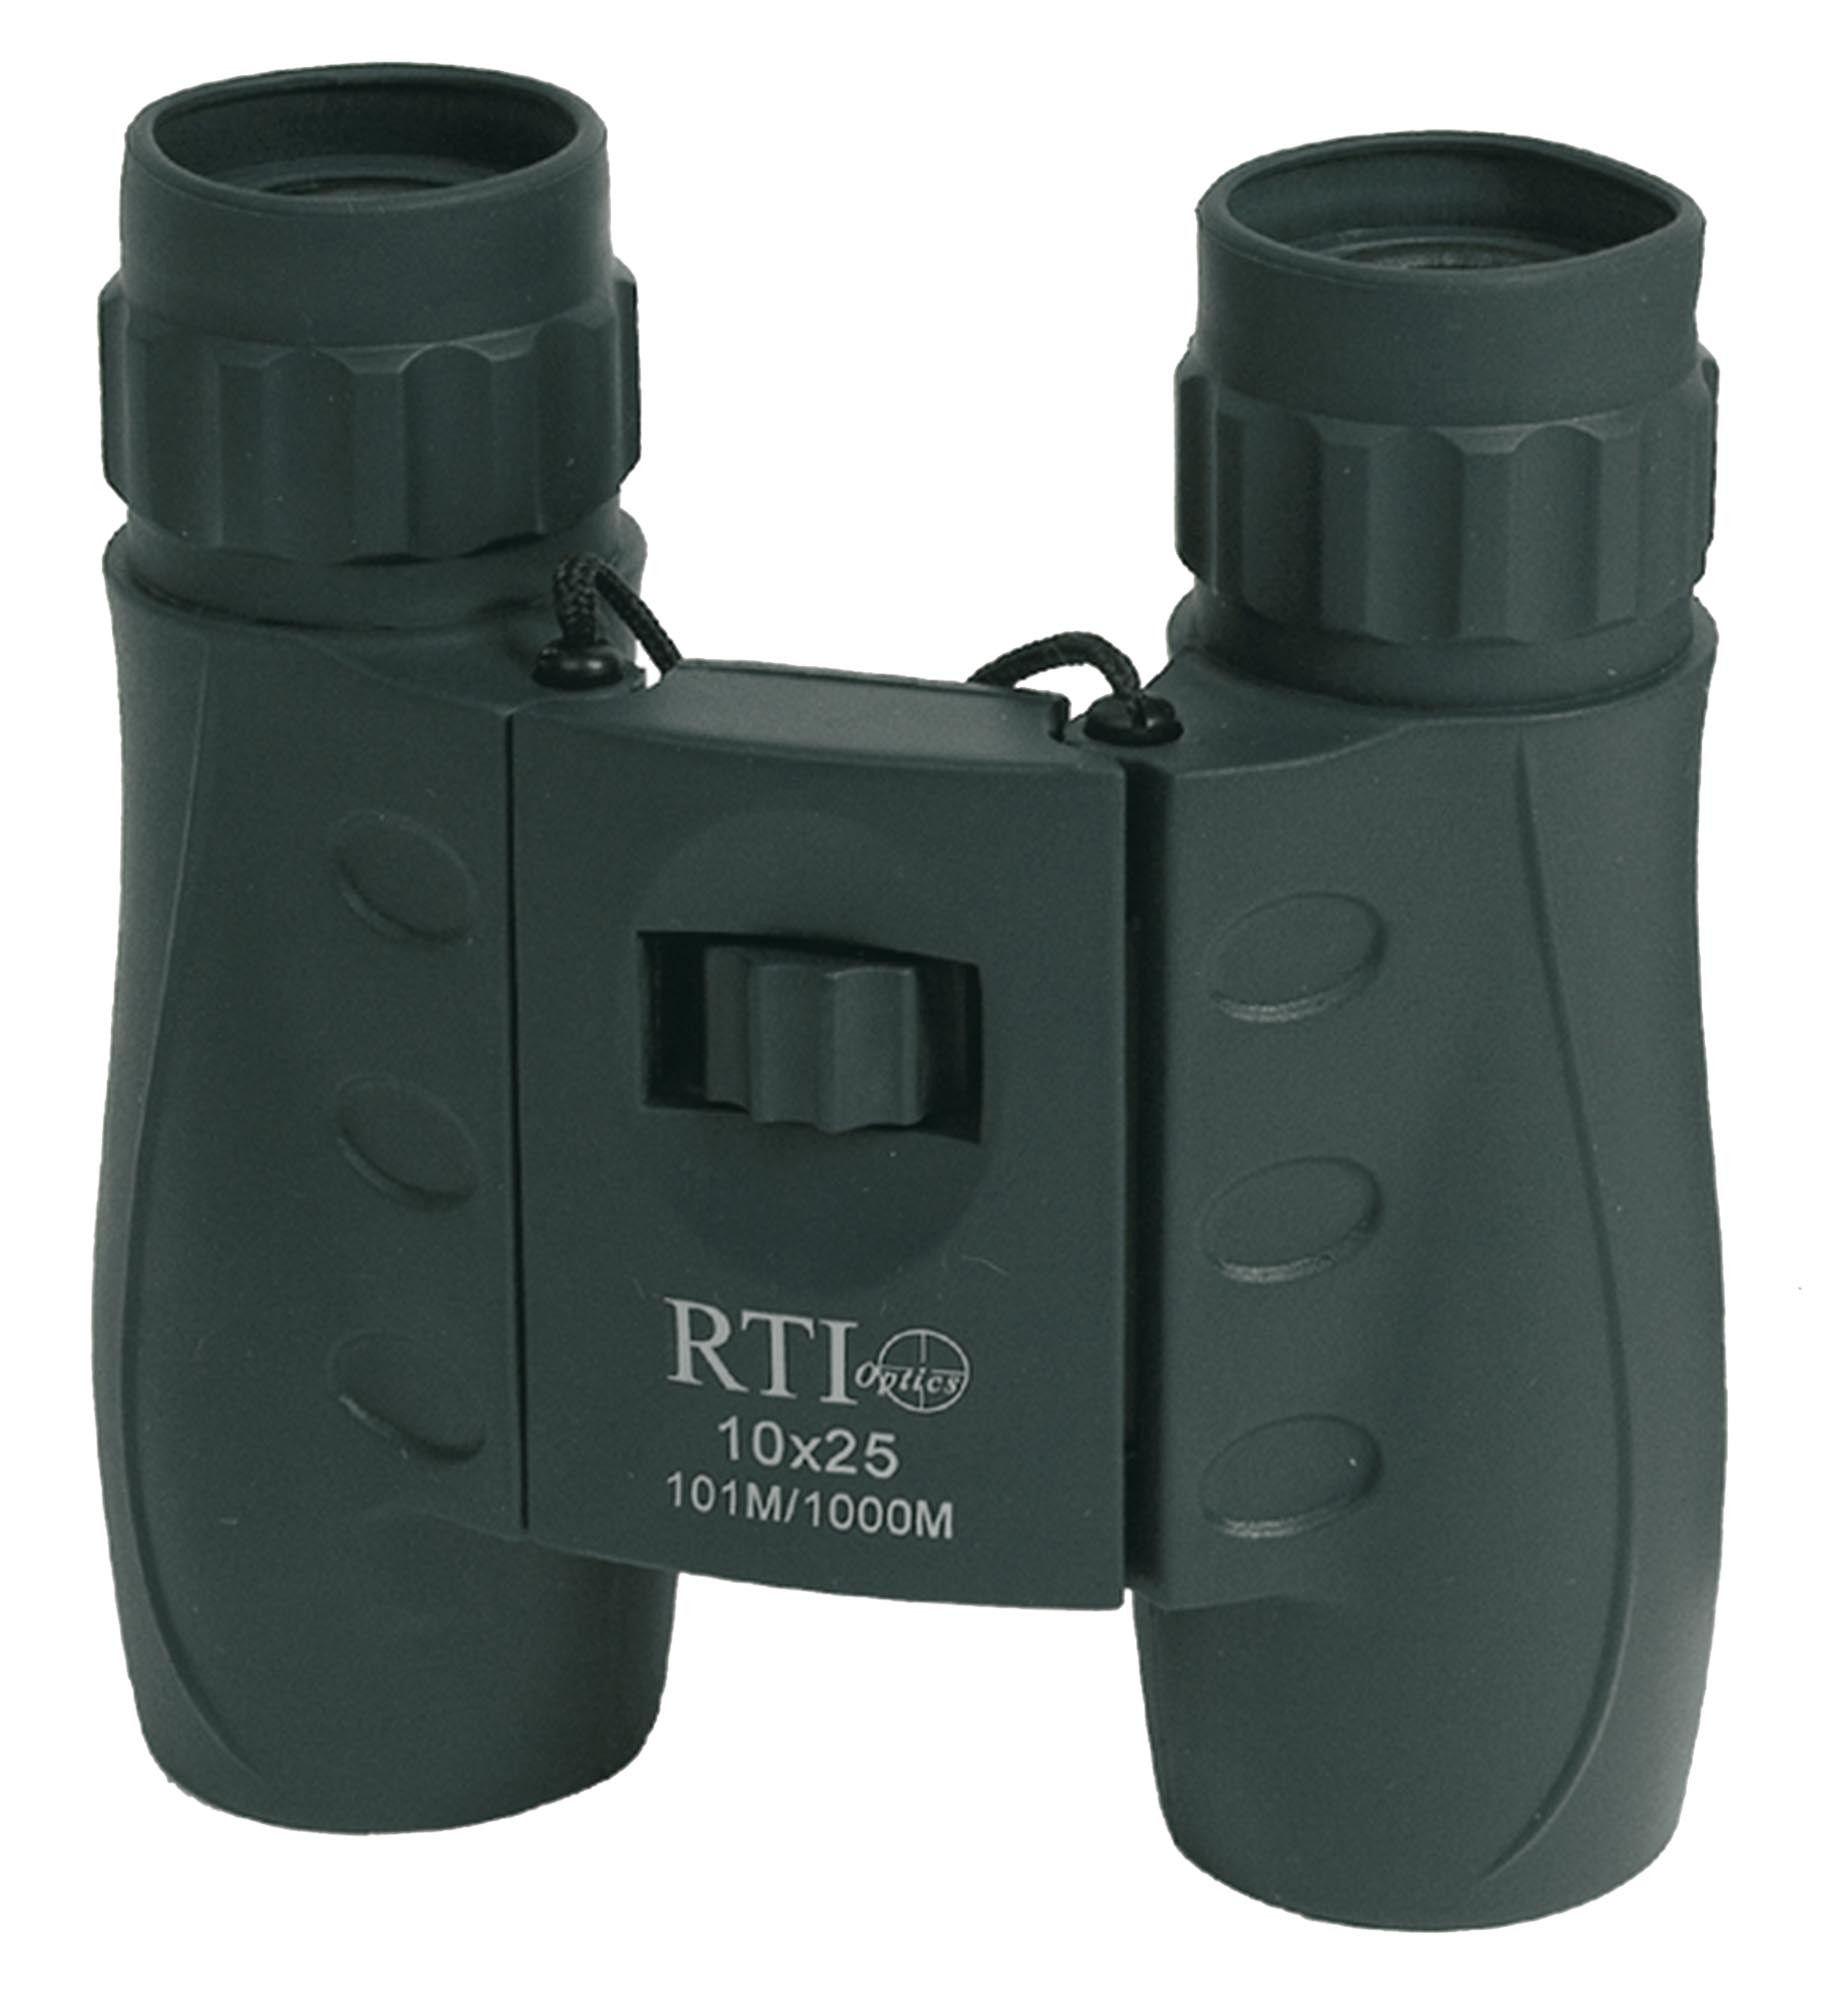 Jumelles pliantes rti 10x25, made in chasse - equipements...